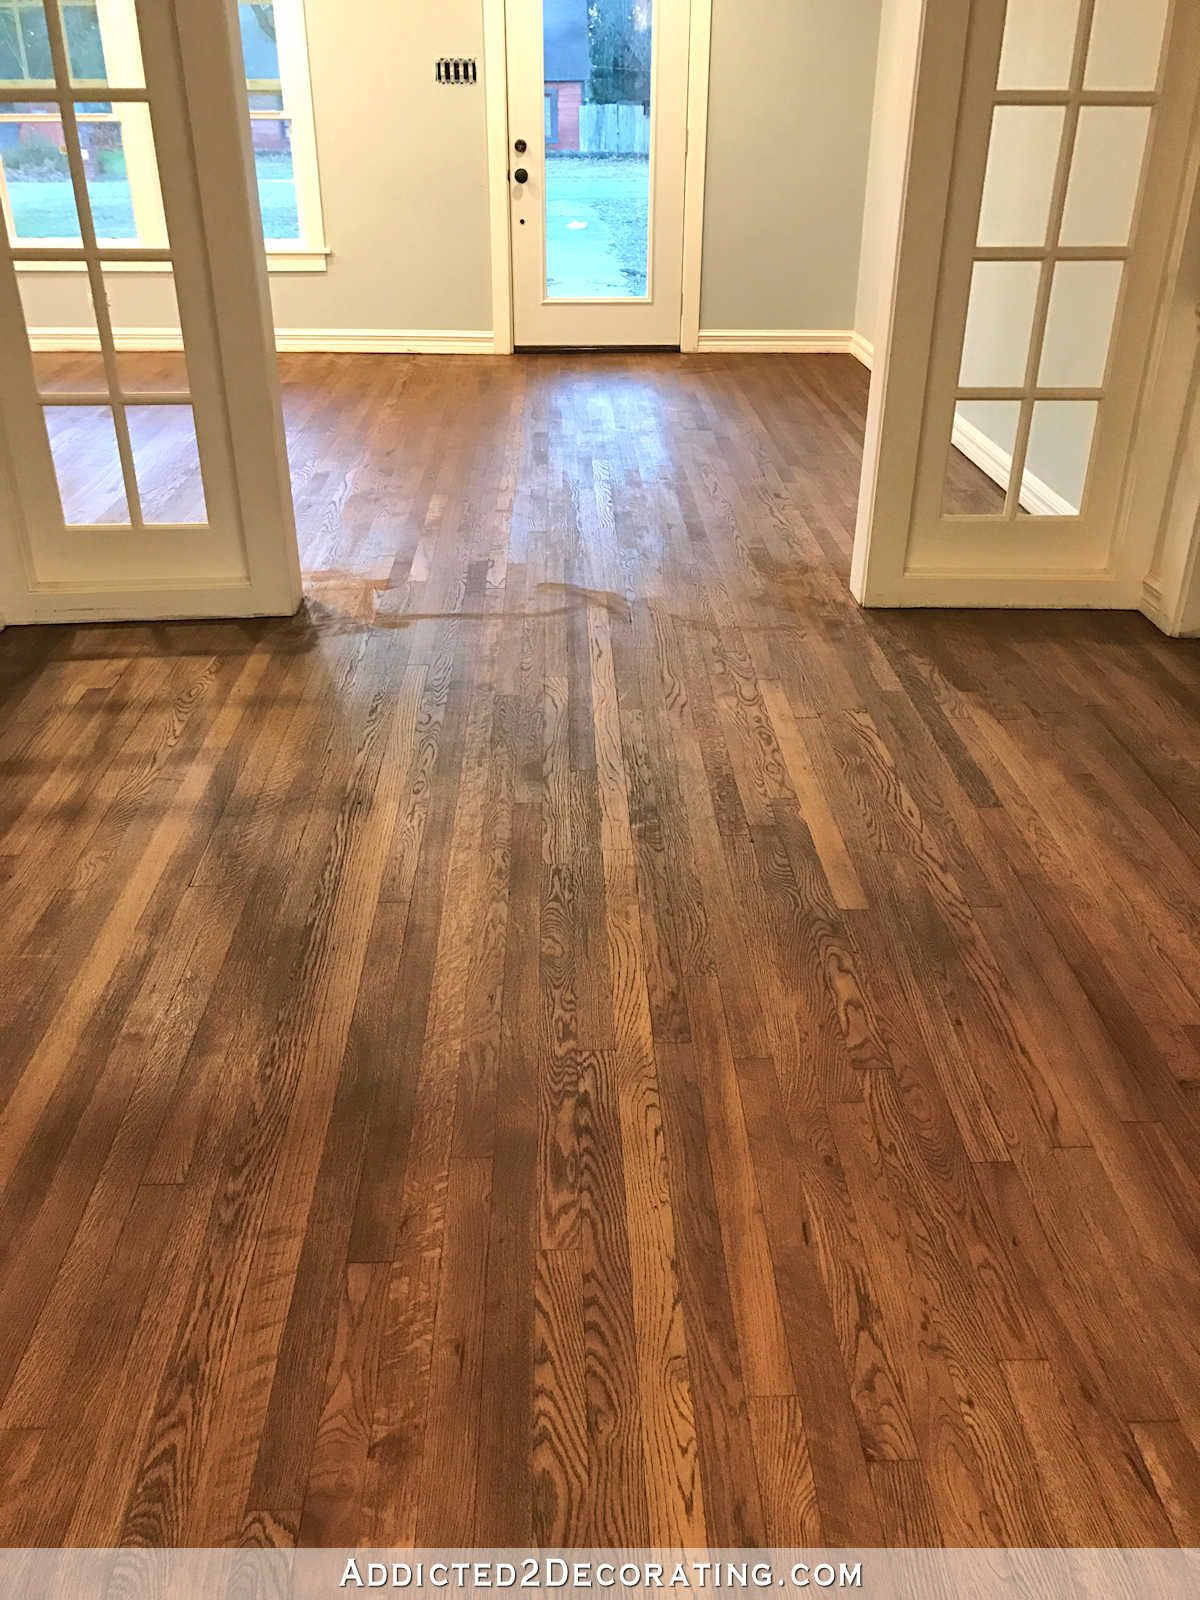 Adventures In Staining My Red Oak Hardwood Floors Products Process Addicted 2 Decorating In 2020 Red Oak Hardwood Oak Hardwood Flooring Red Oak Floors